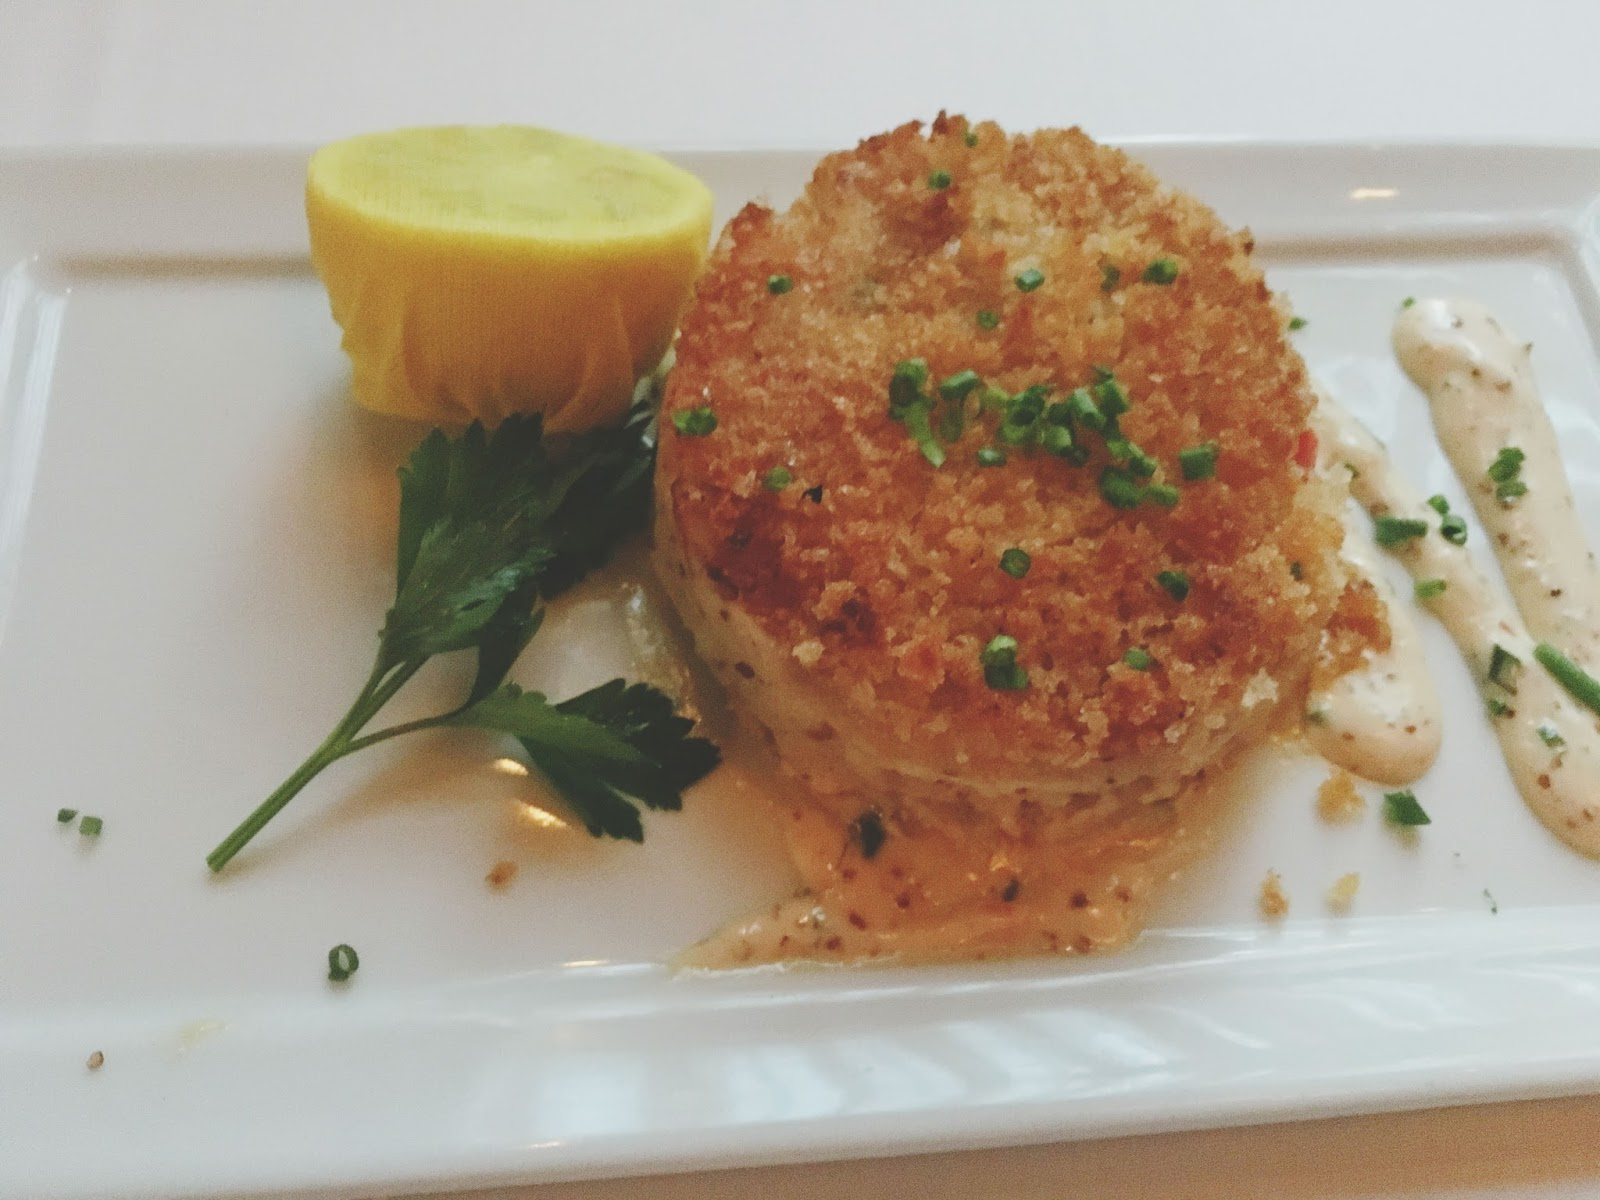 crab cake at Eddie V's - A restaurant in Houston, Texas